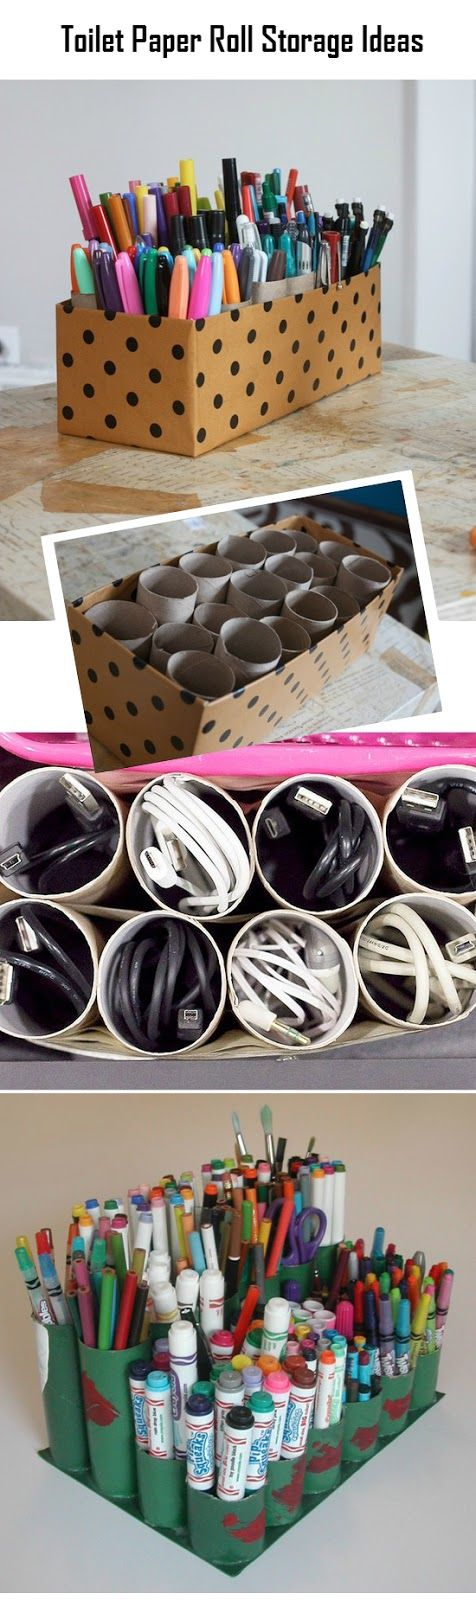 Toilet Paper Roll Storage Ideas- Need one for all my cords!